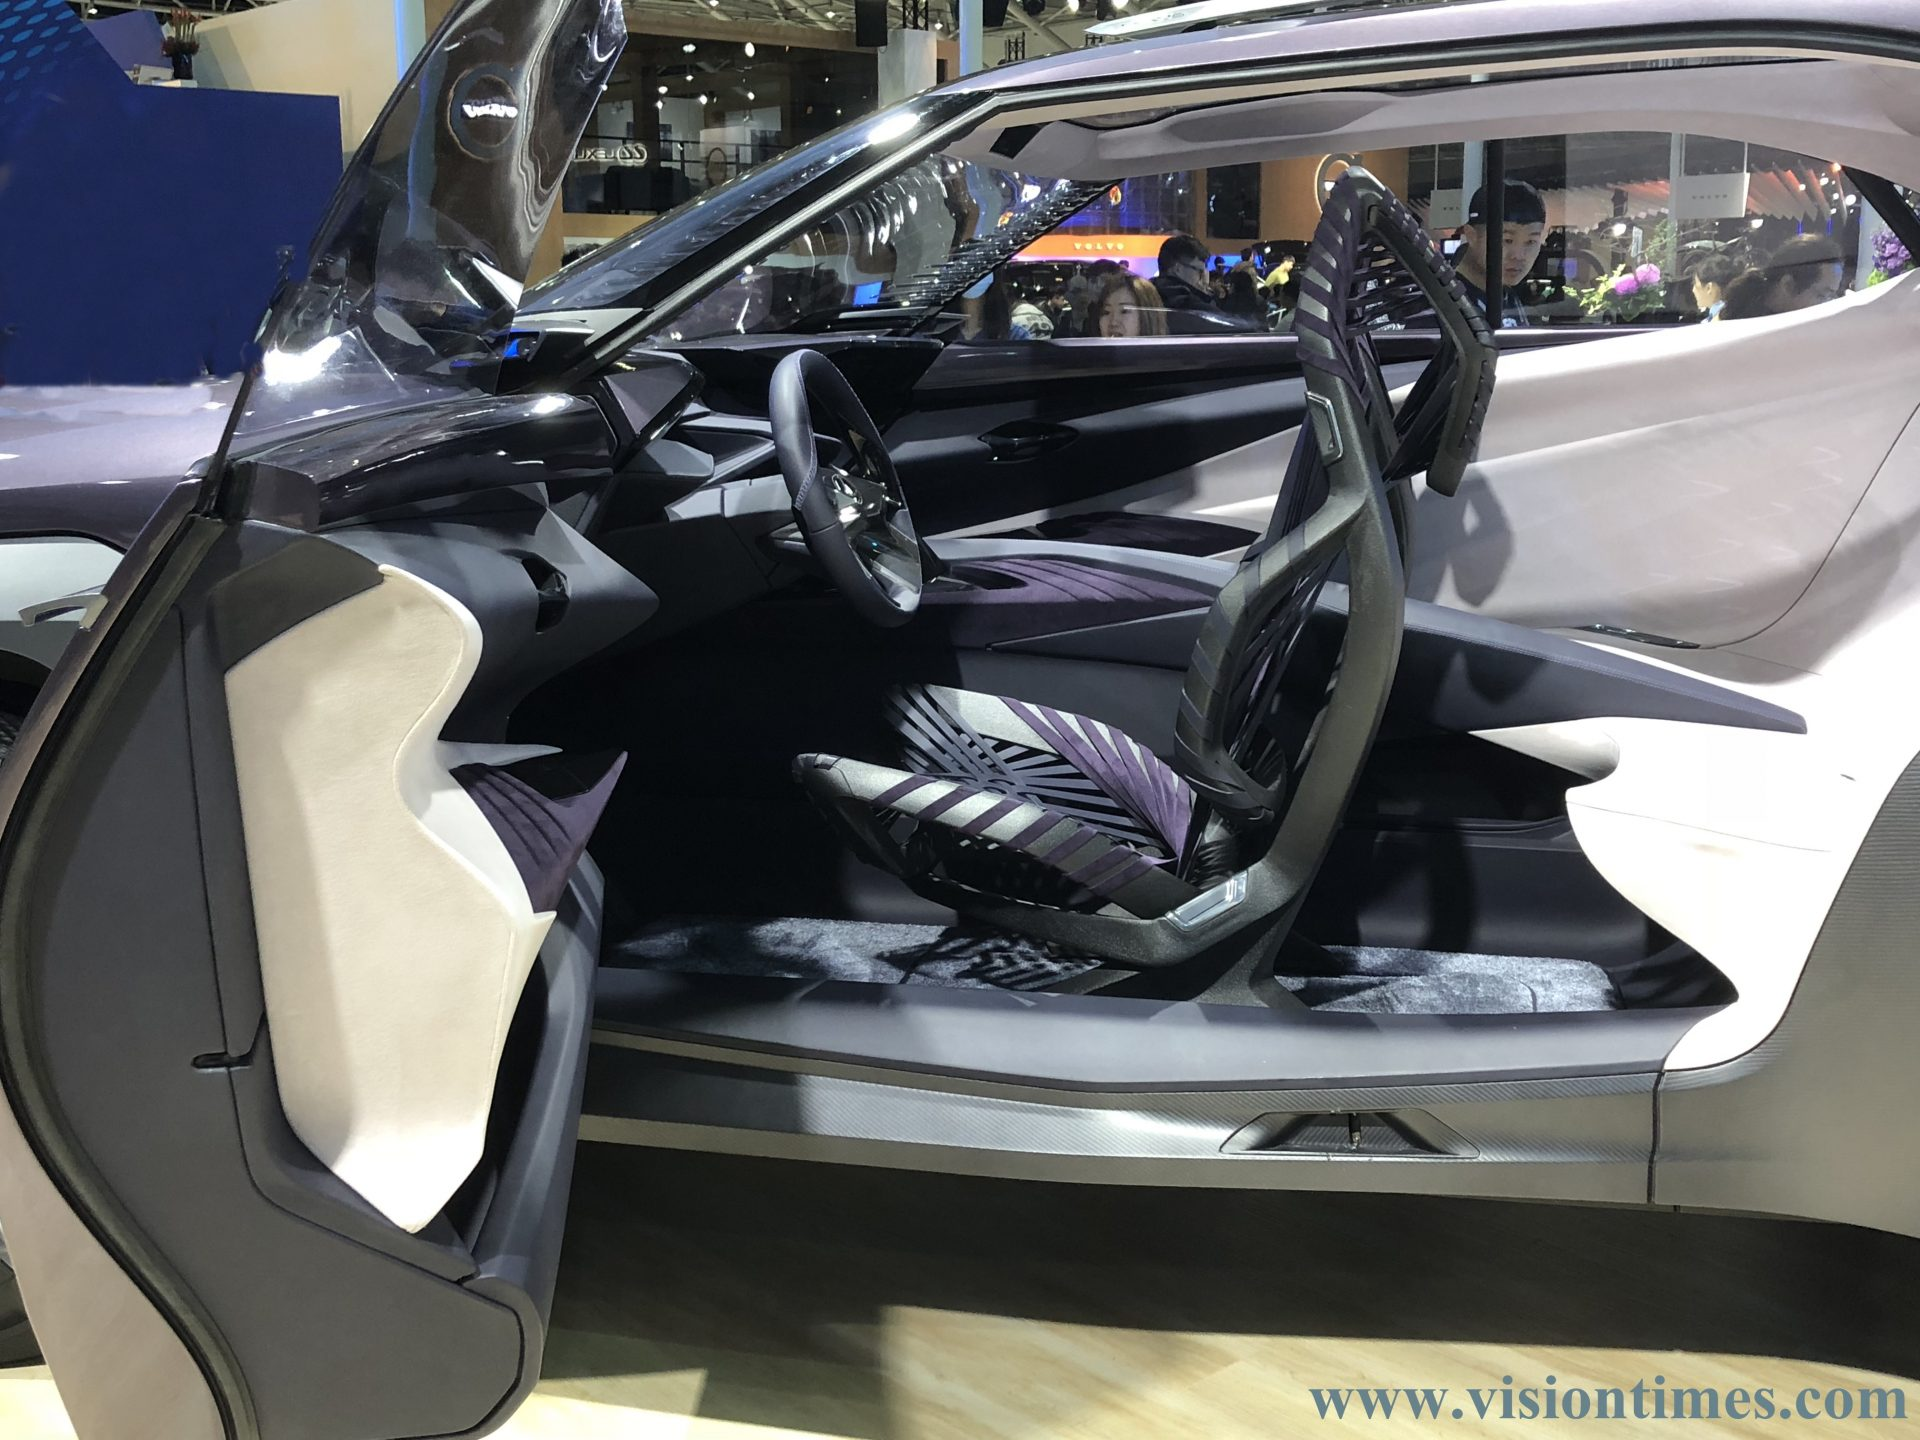 the interior of a Lexus UX Concept vehicle at the 2018 Taipei International Auto Show. (Image: Billy Shyu)